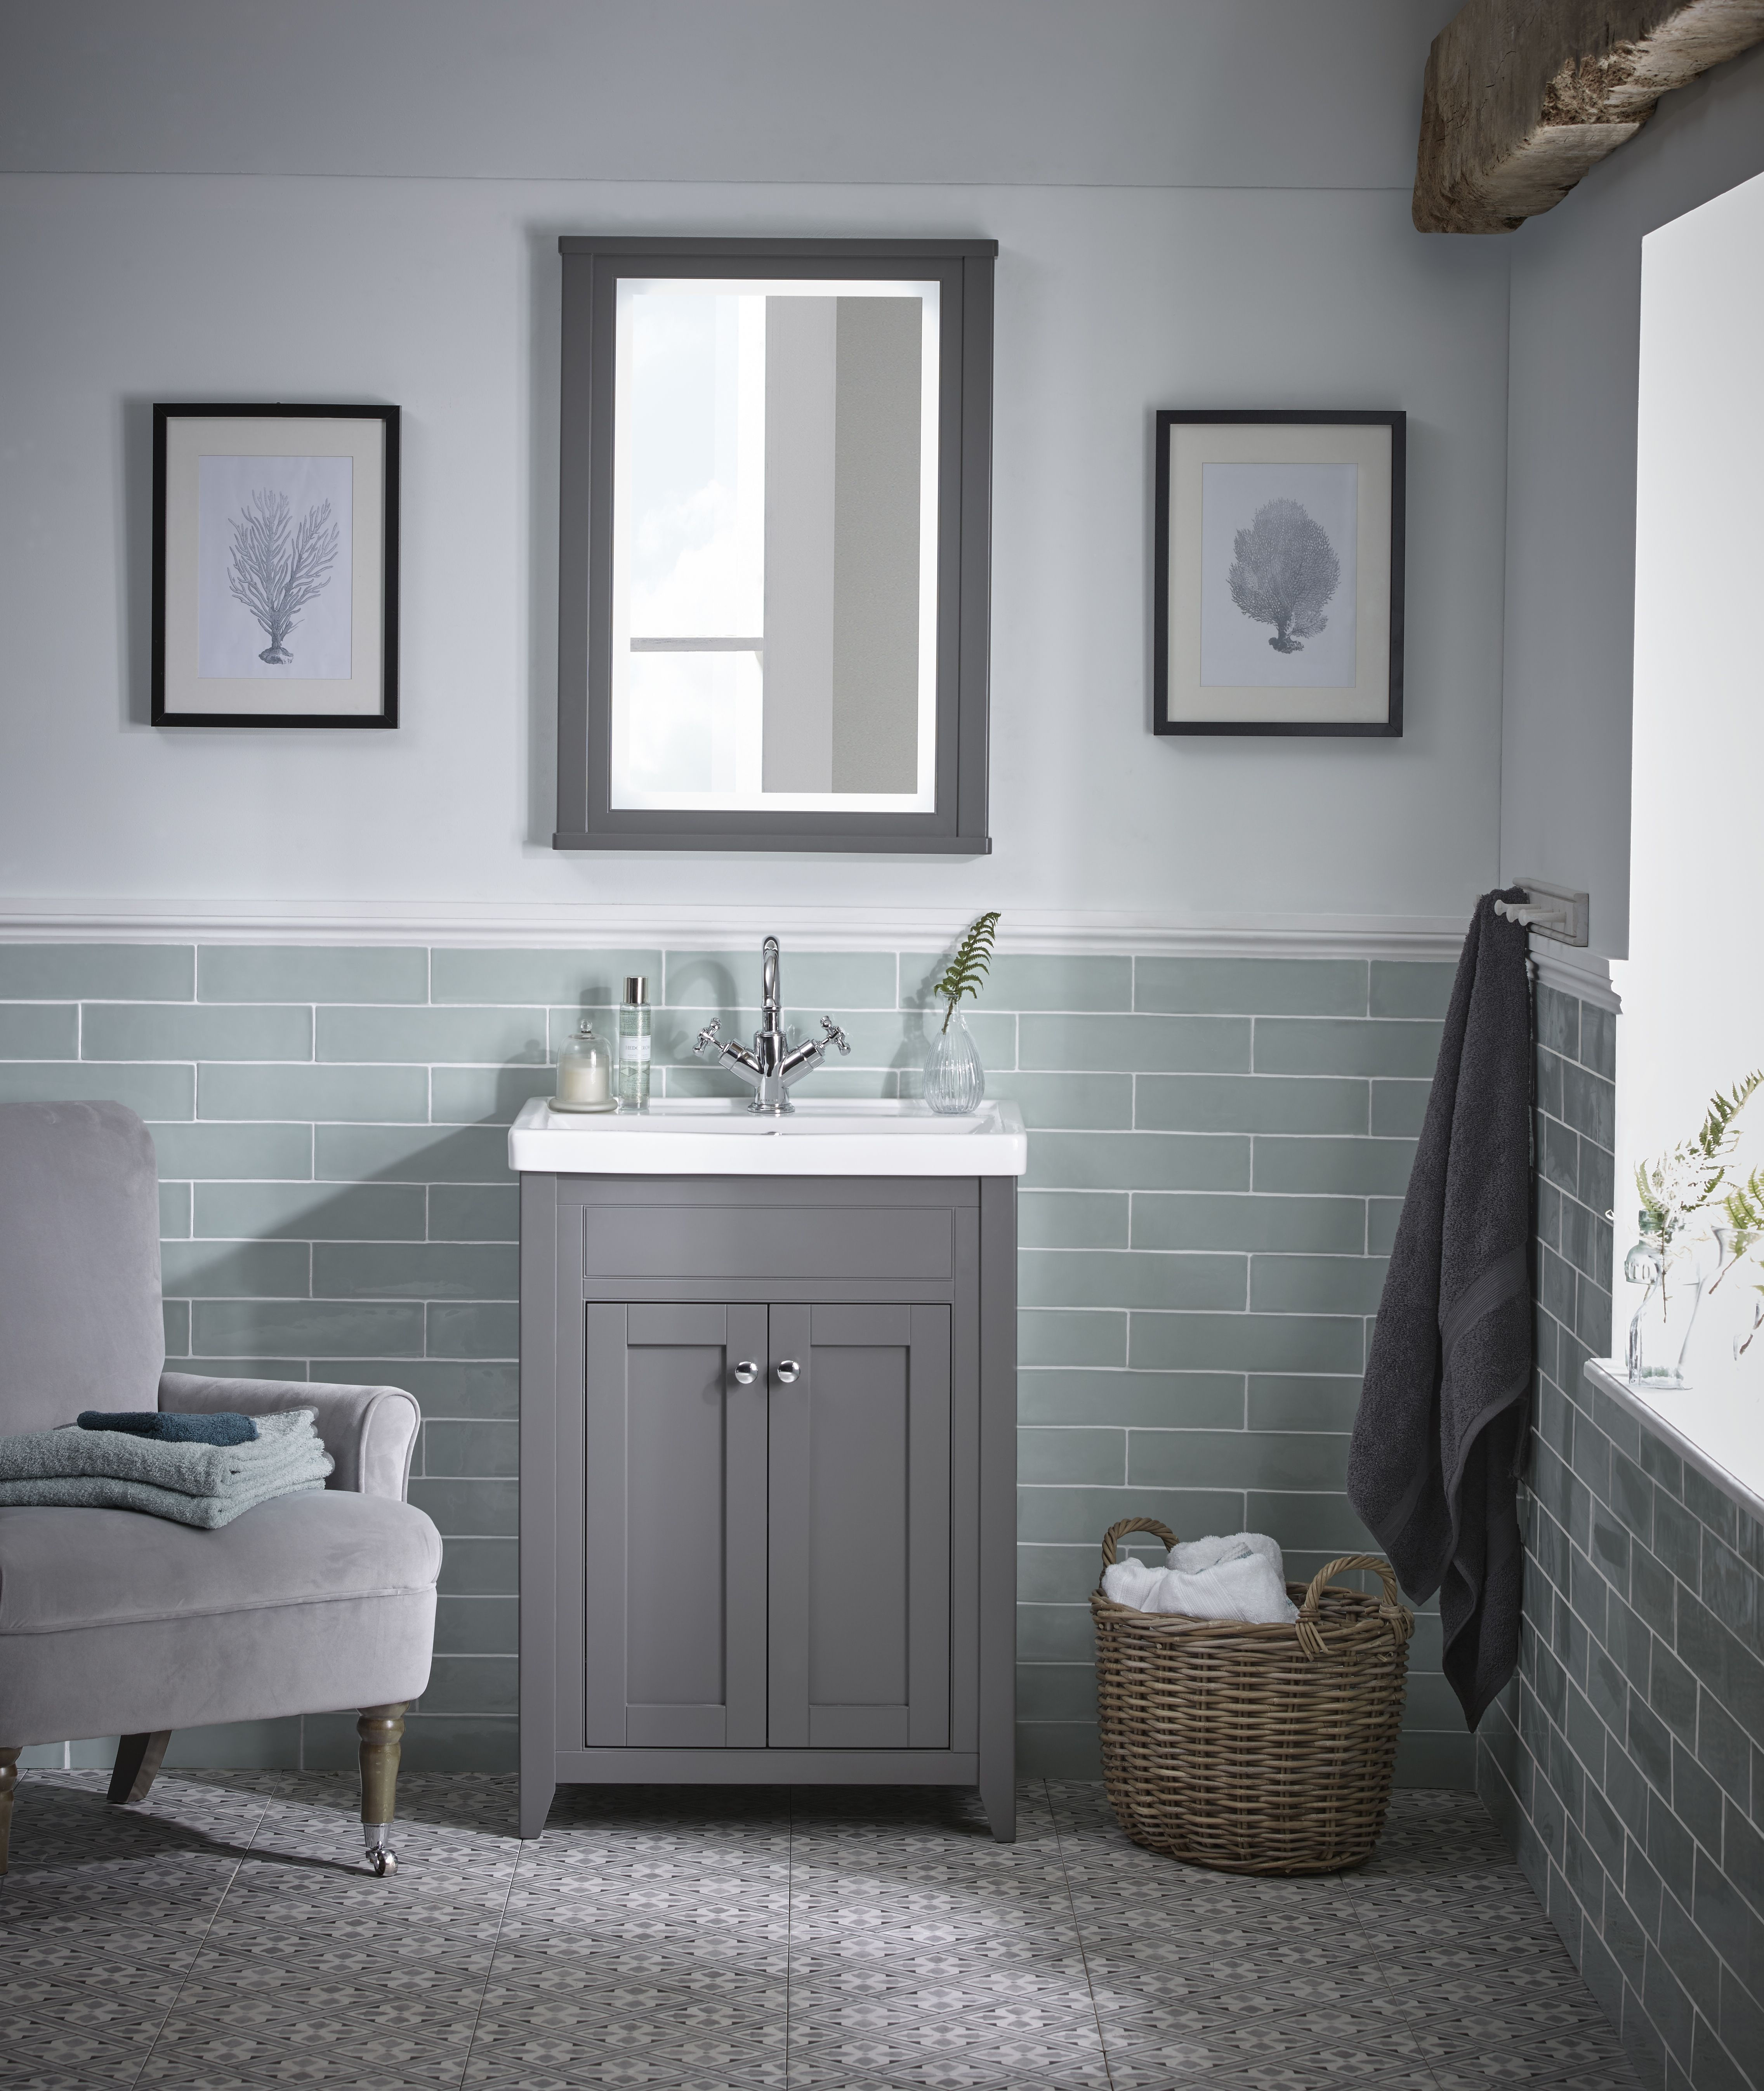 The Laura Ashley Bathroom Collection Consists Of Bathroom Furniture Cabinets And Mirror Grey Bathroom Furniture Laura Ashley Bathroom Bathroom Vanity Makeover